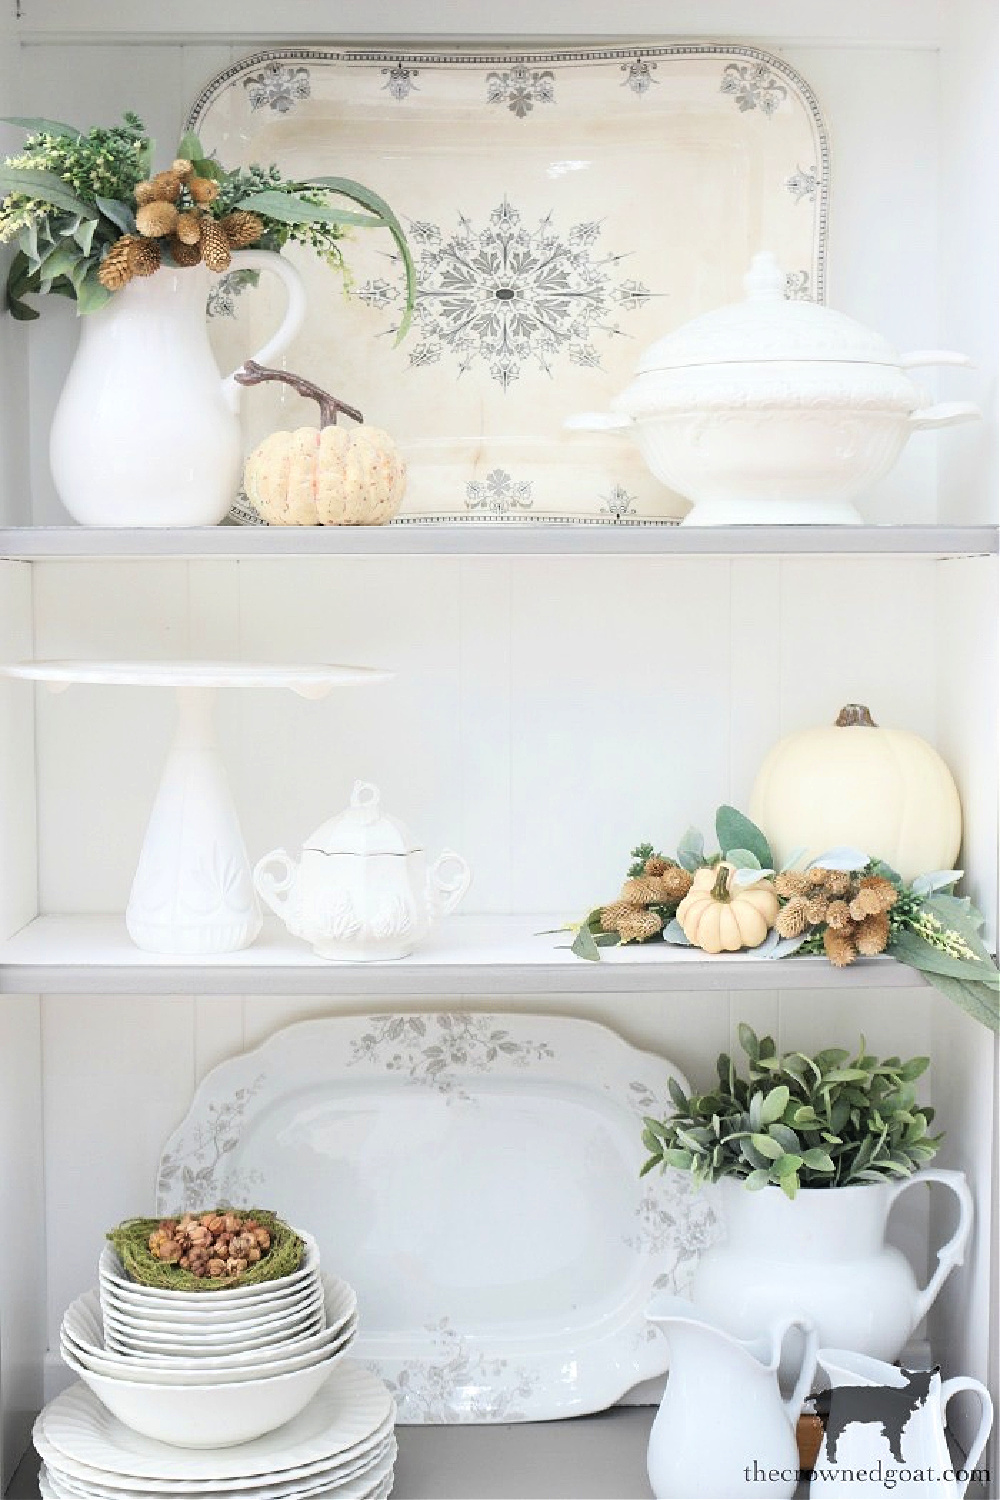 Decorating a Breakfast Nook Hutch with Pumpkins for Fall-The Crowned Goat